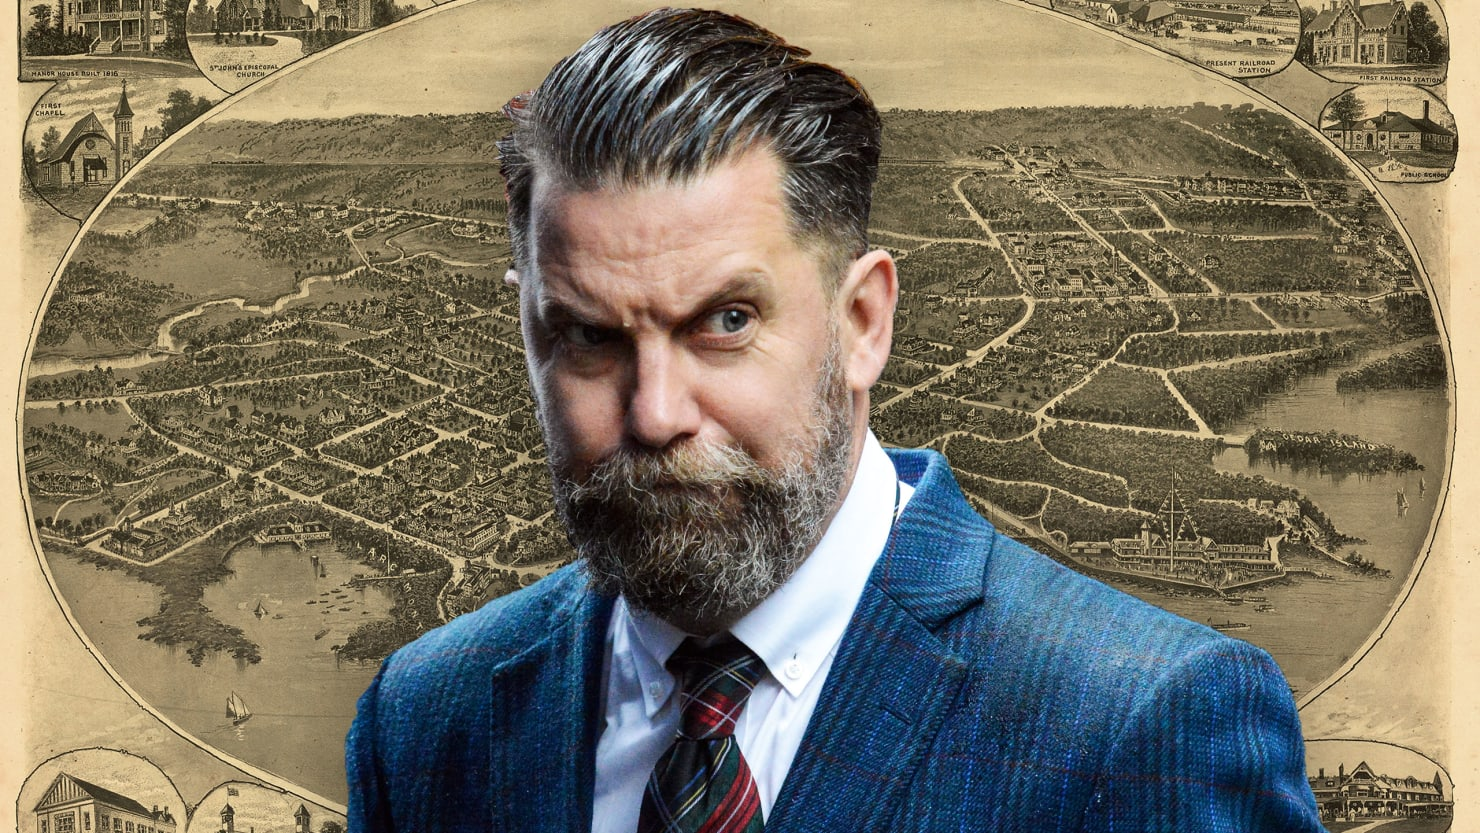 thedailybeast.com - Kelly Weill - Gavin McInnes Whines His Fellow Rich Neighbors Don't Like Him